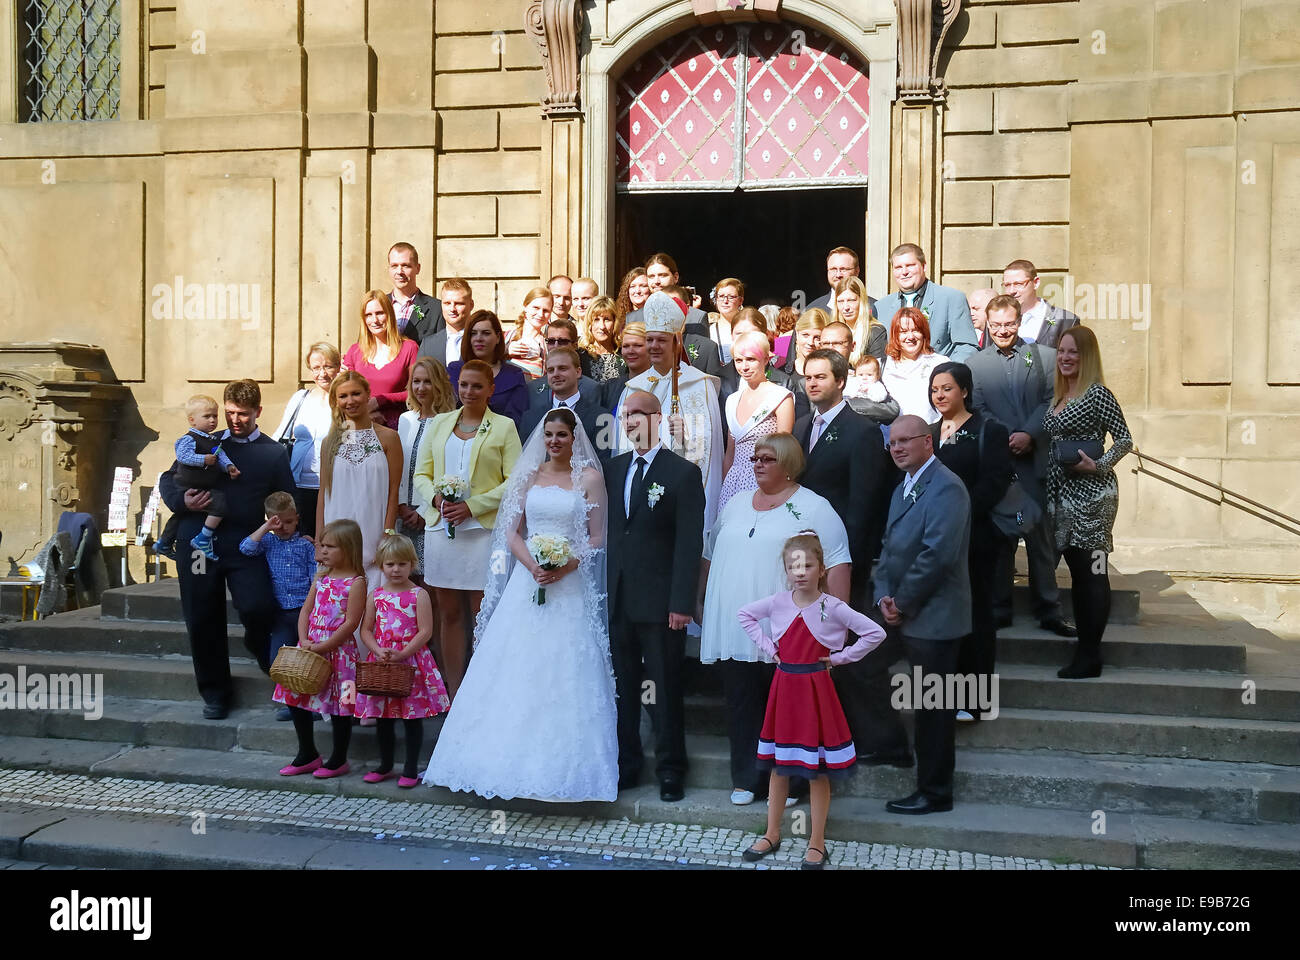 Prague, bride and groom and guests pose for a souvenir photo. - Stock Image